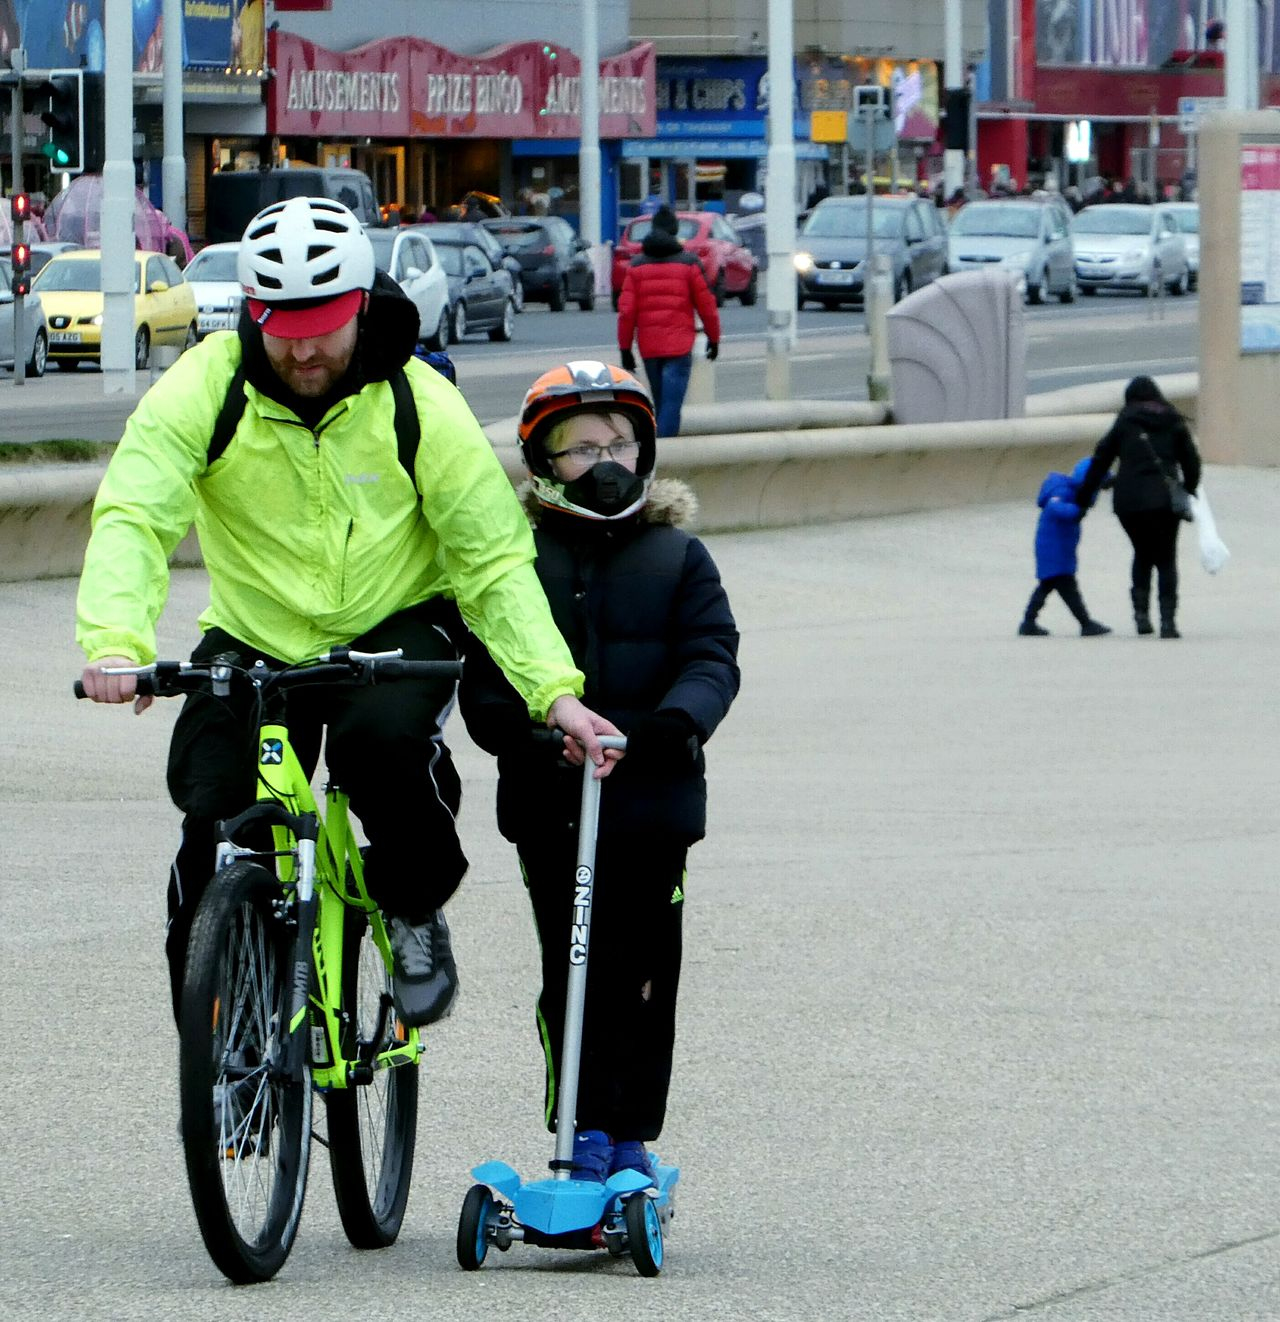 Father and son together against the cold and bitter wind... Headwear Two People Father Son Moments Full Length Cold Temperature Windy Bicycle Scooter Focus On Foreground Helmets Blackpool Promenade